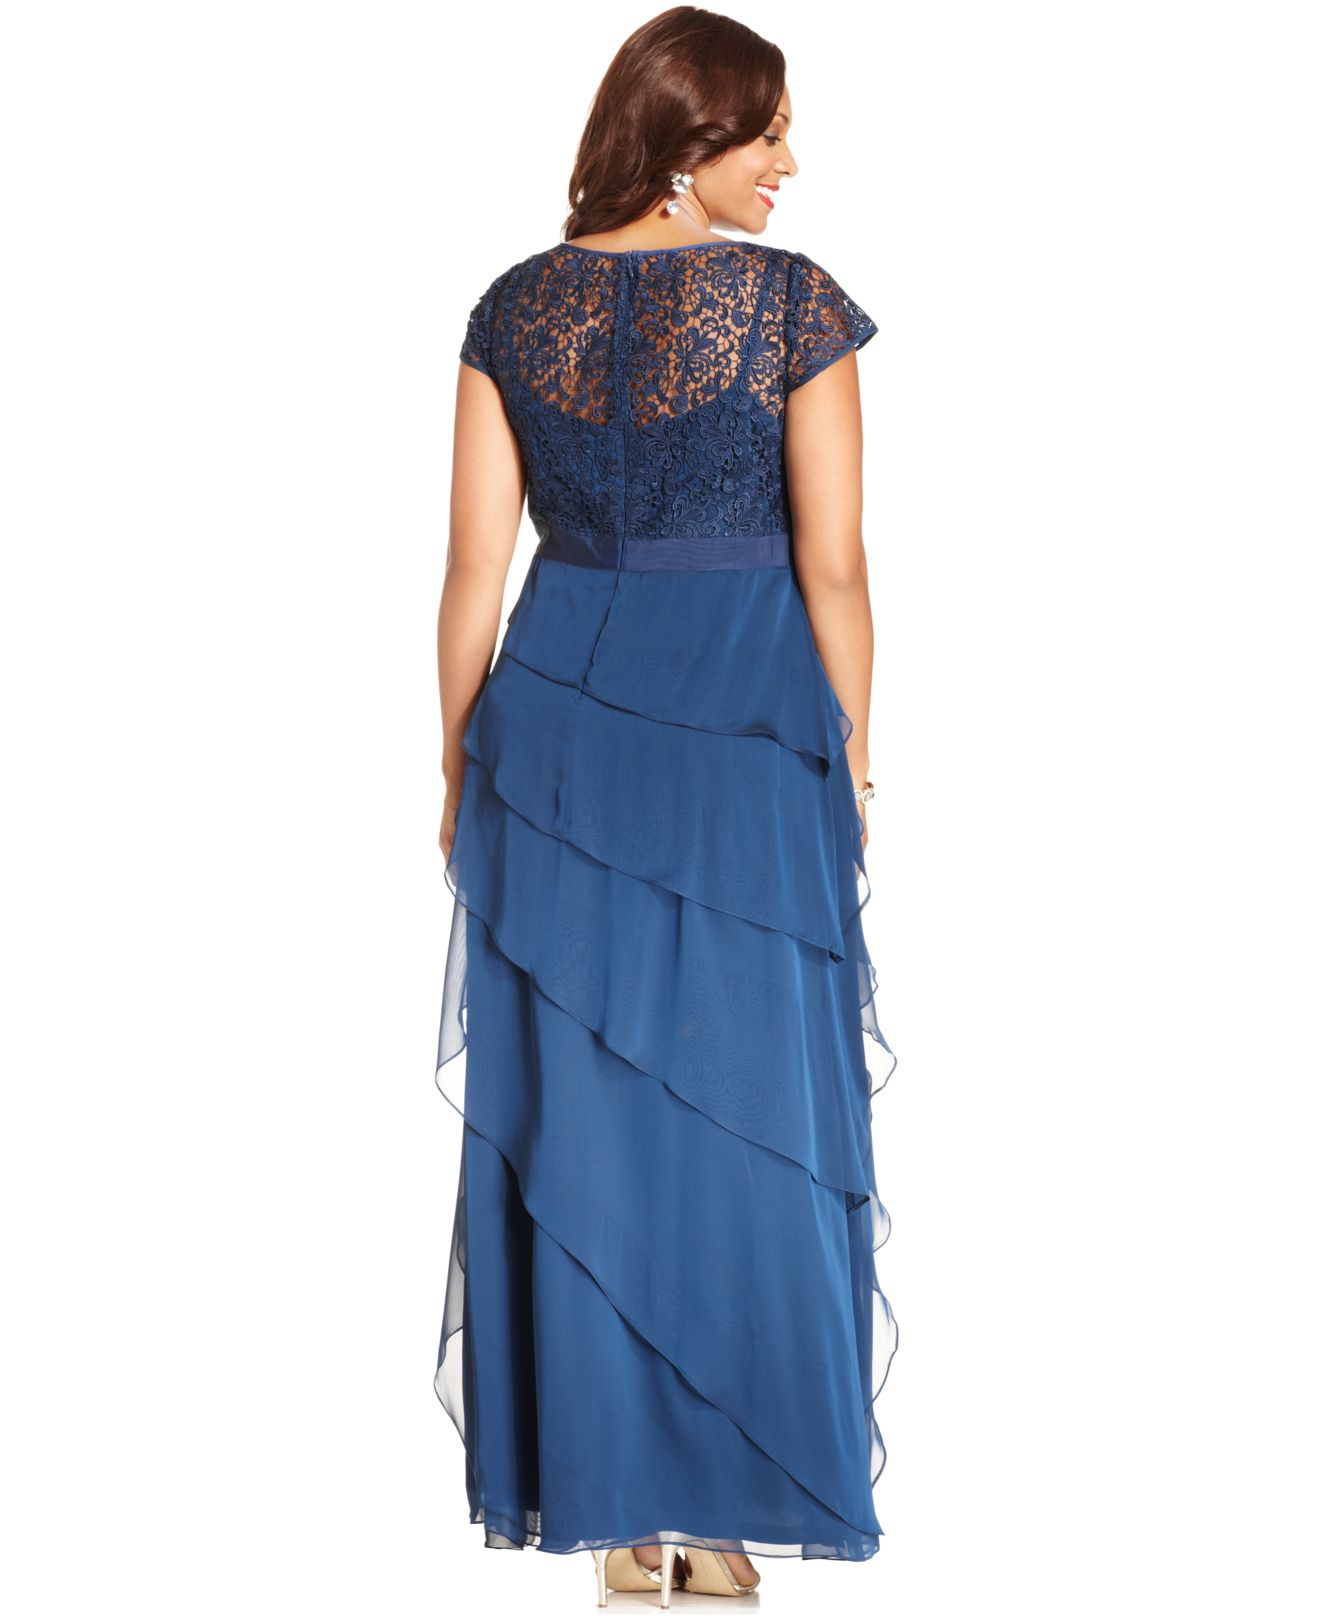 Lyst - Adrianna Papell Plus Size Cap-sleeve Lace Tiered Gown in Blue